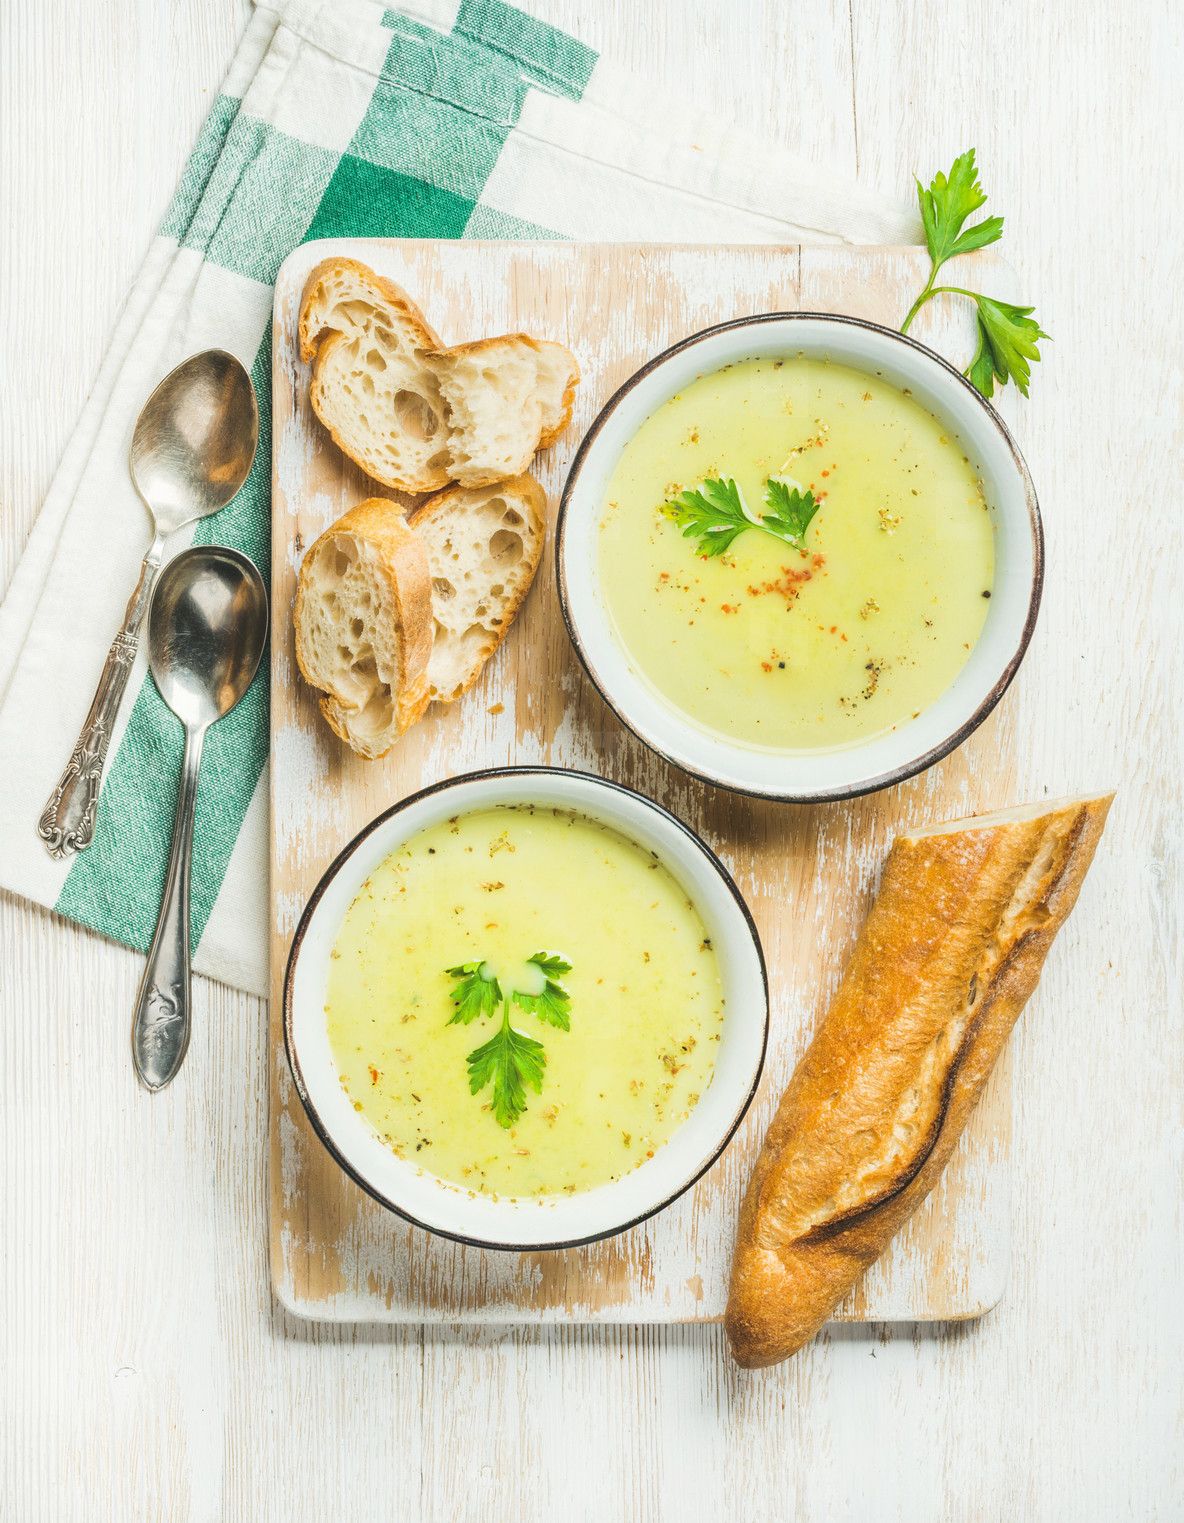 Green vegetable soup with parsley and baguette on wooden board